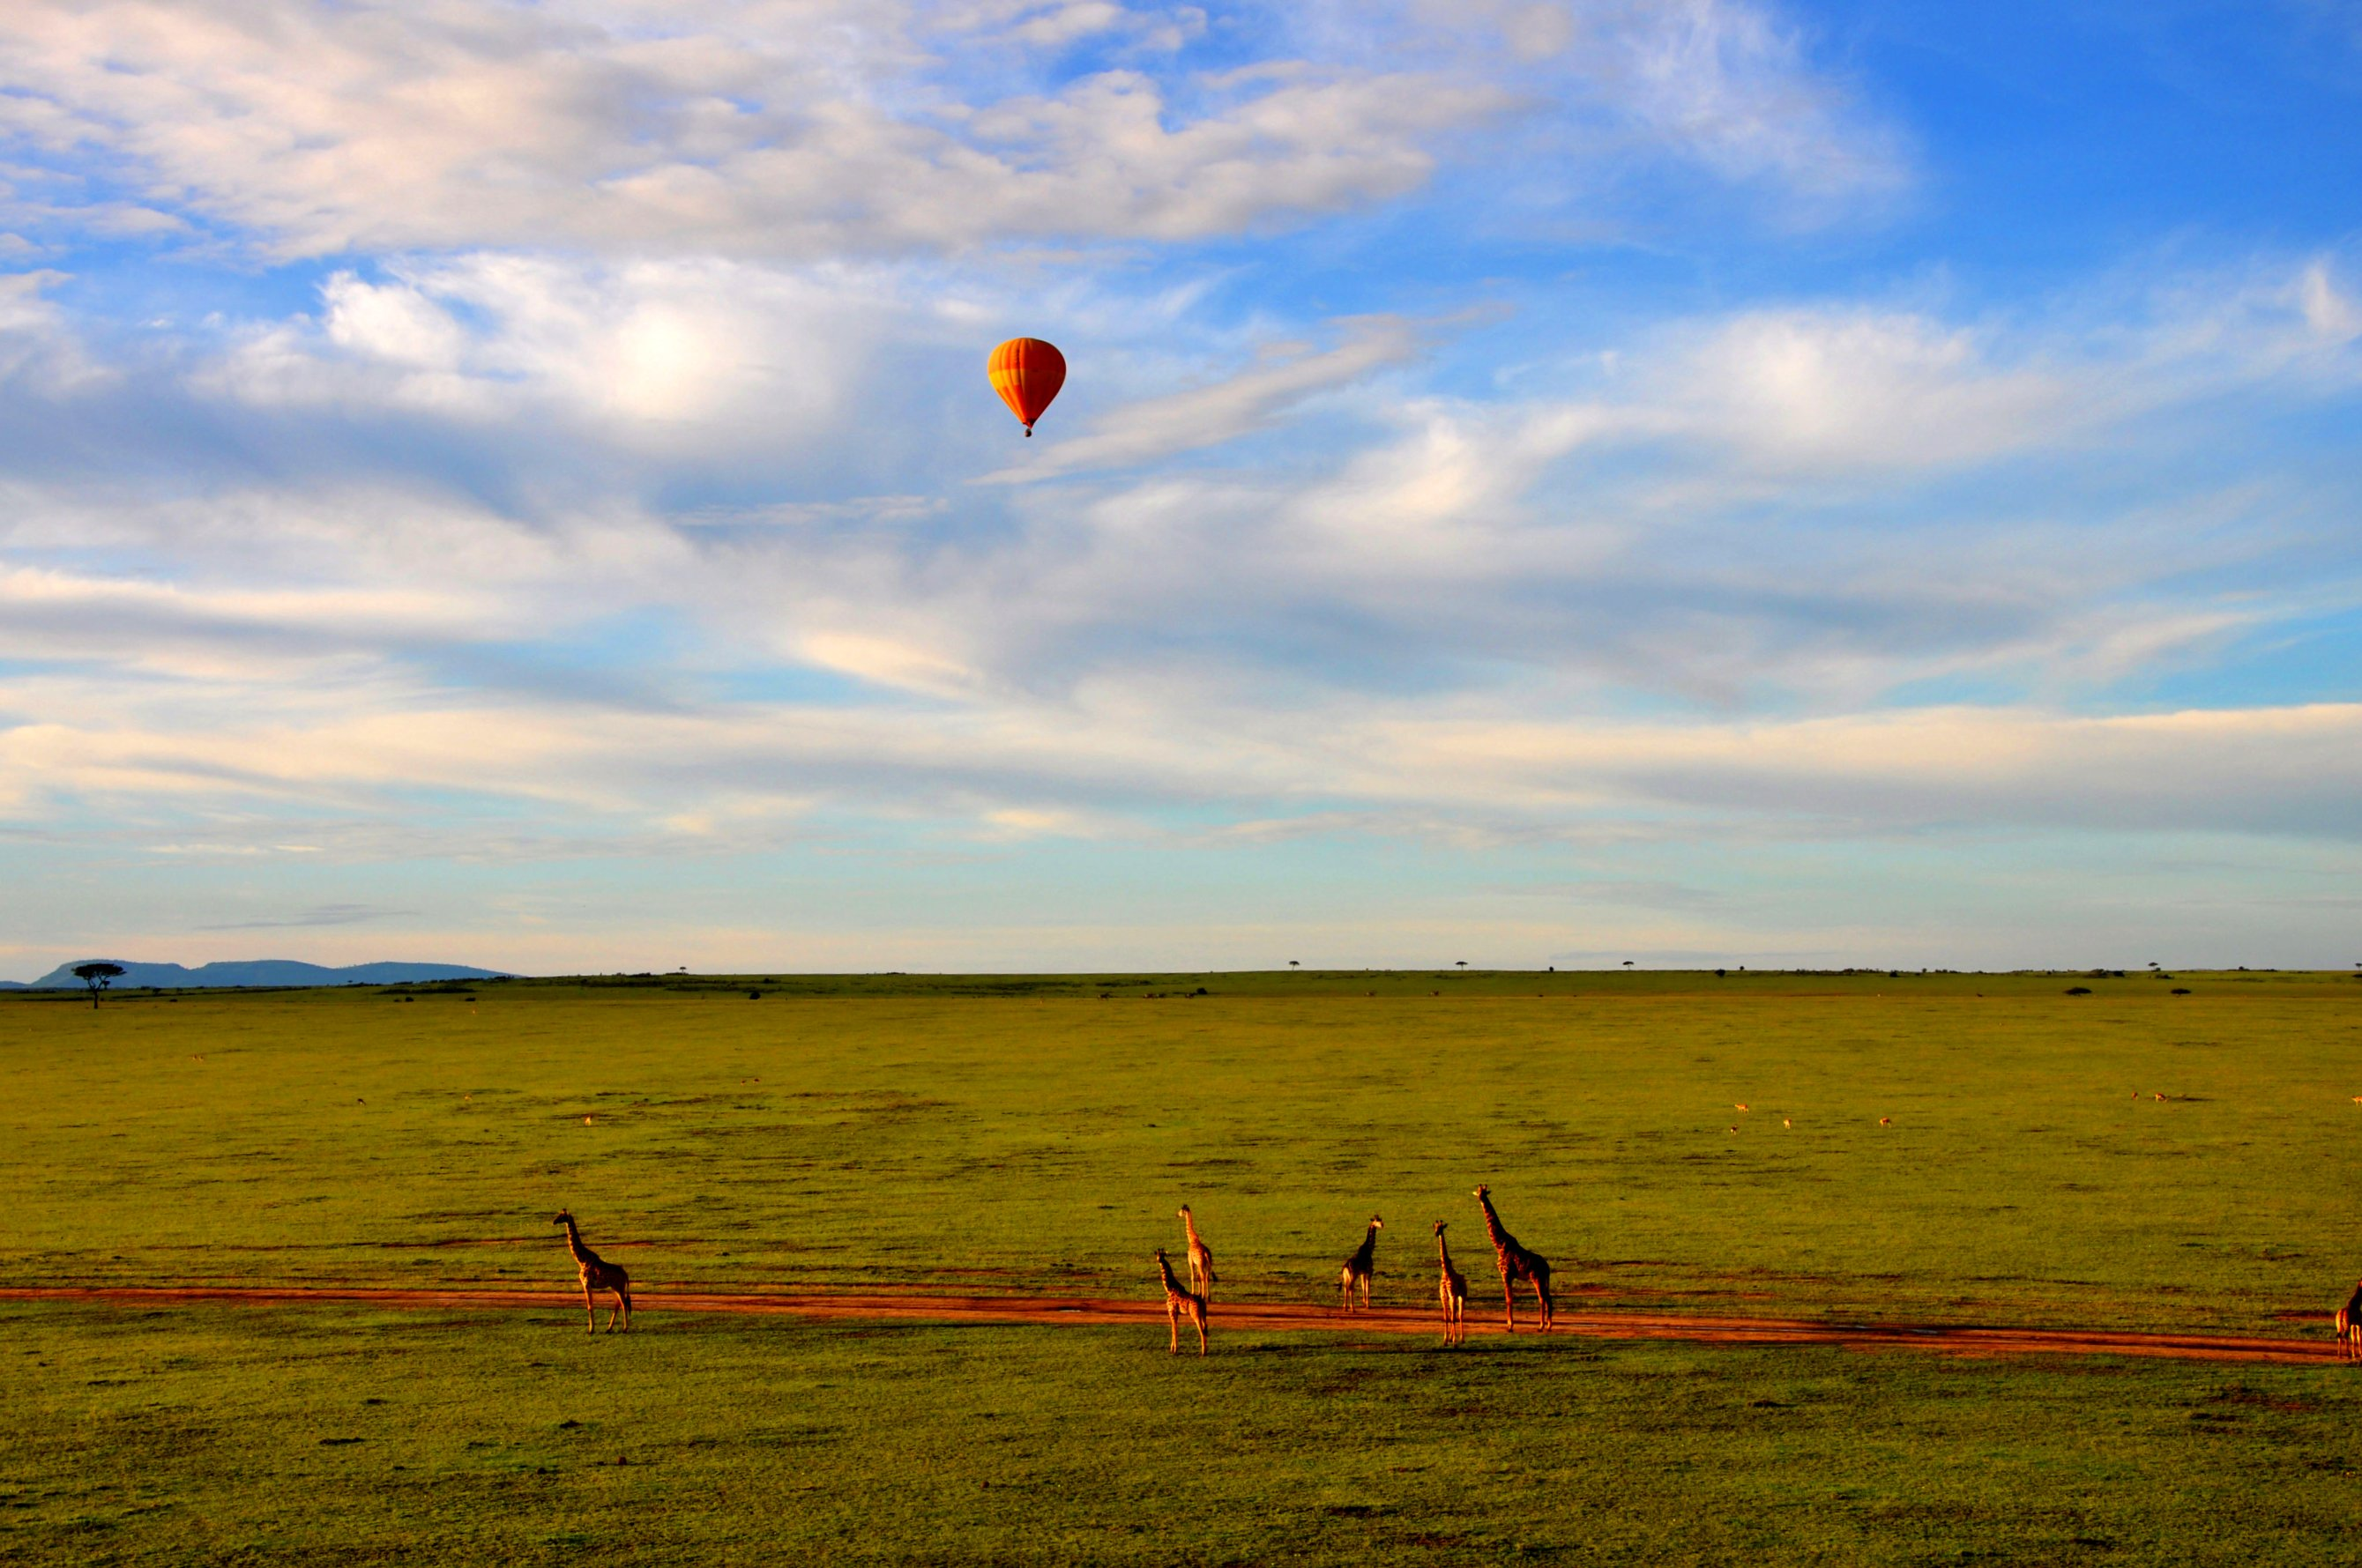 hot_air_balloon_safari_in_maasai_mara_042020060606.jpg